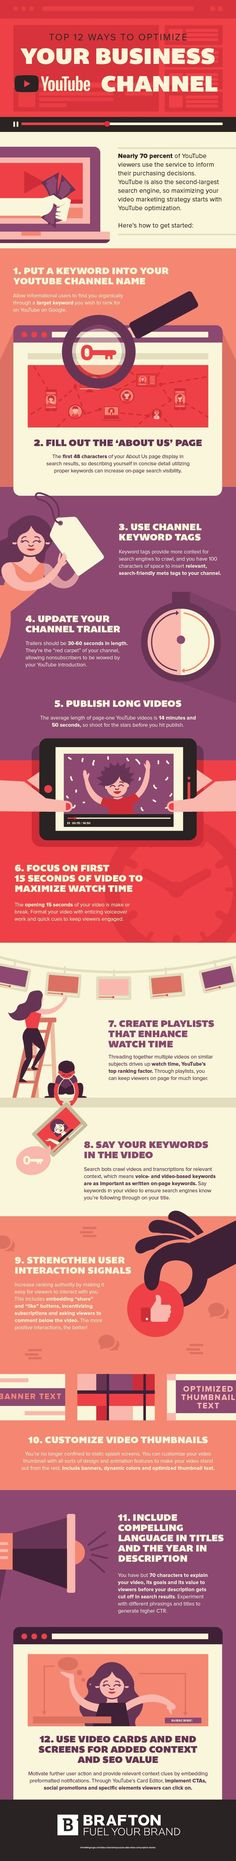 12 ways to optimize your business youtube channel infographic